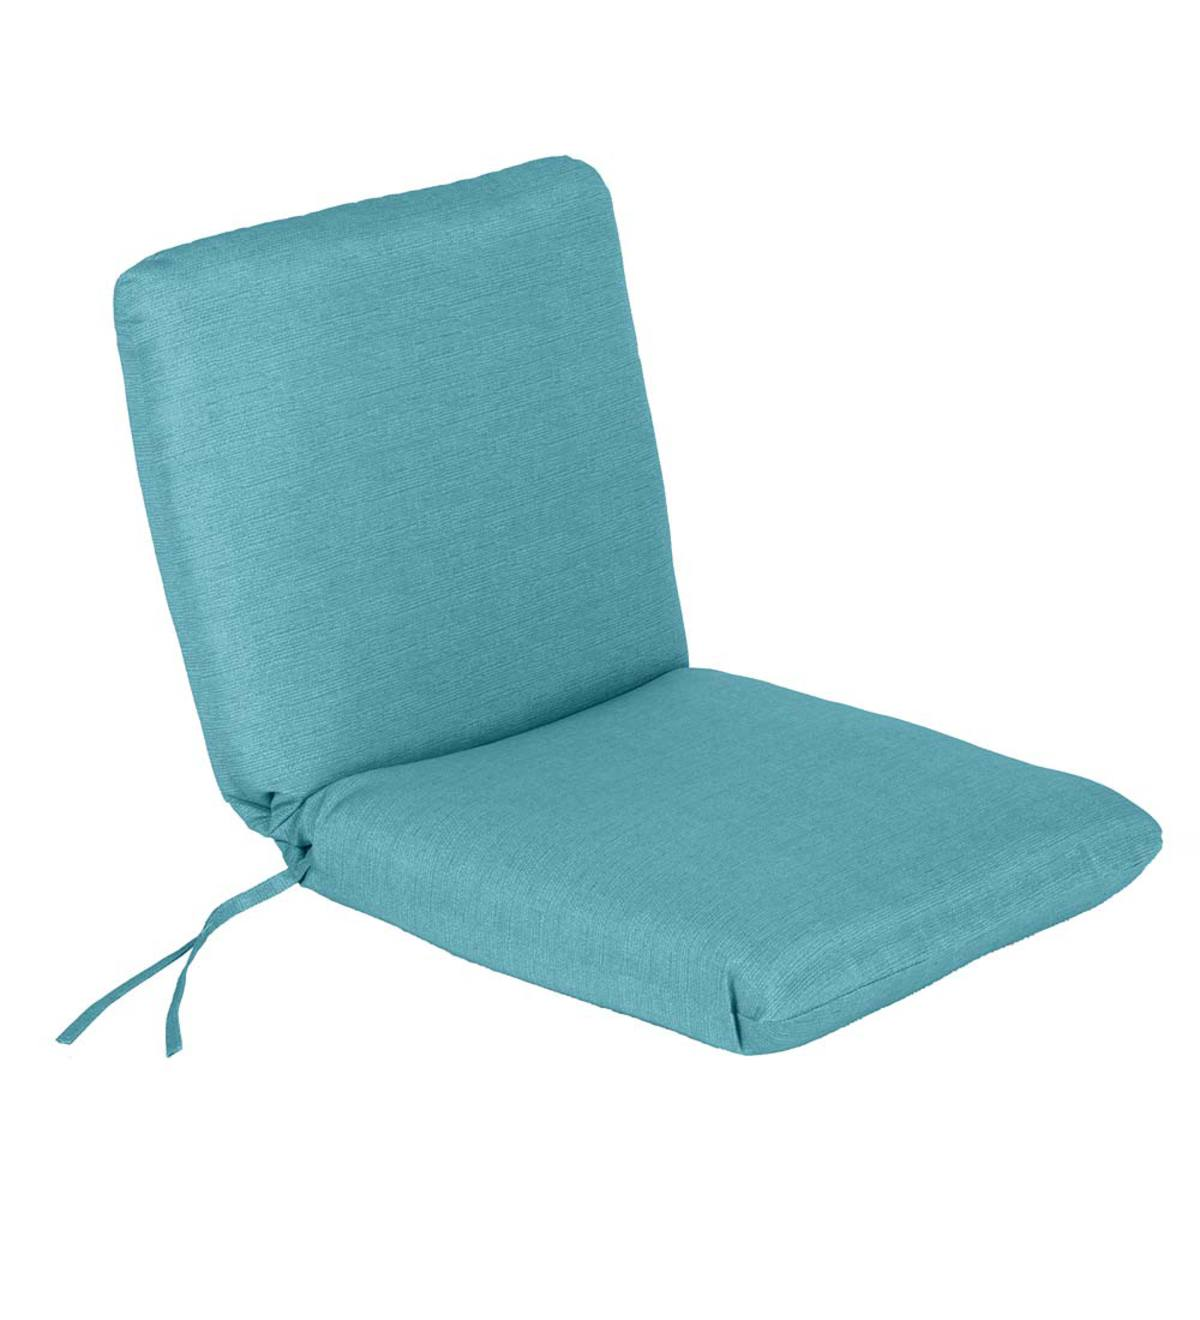 Shenandoah Outdoor Chair Seat/Back Cushion with Hinge